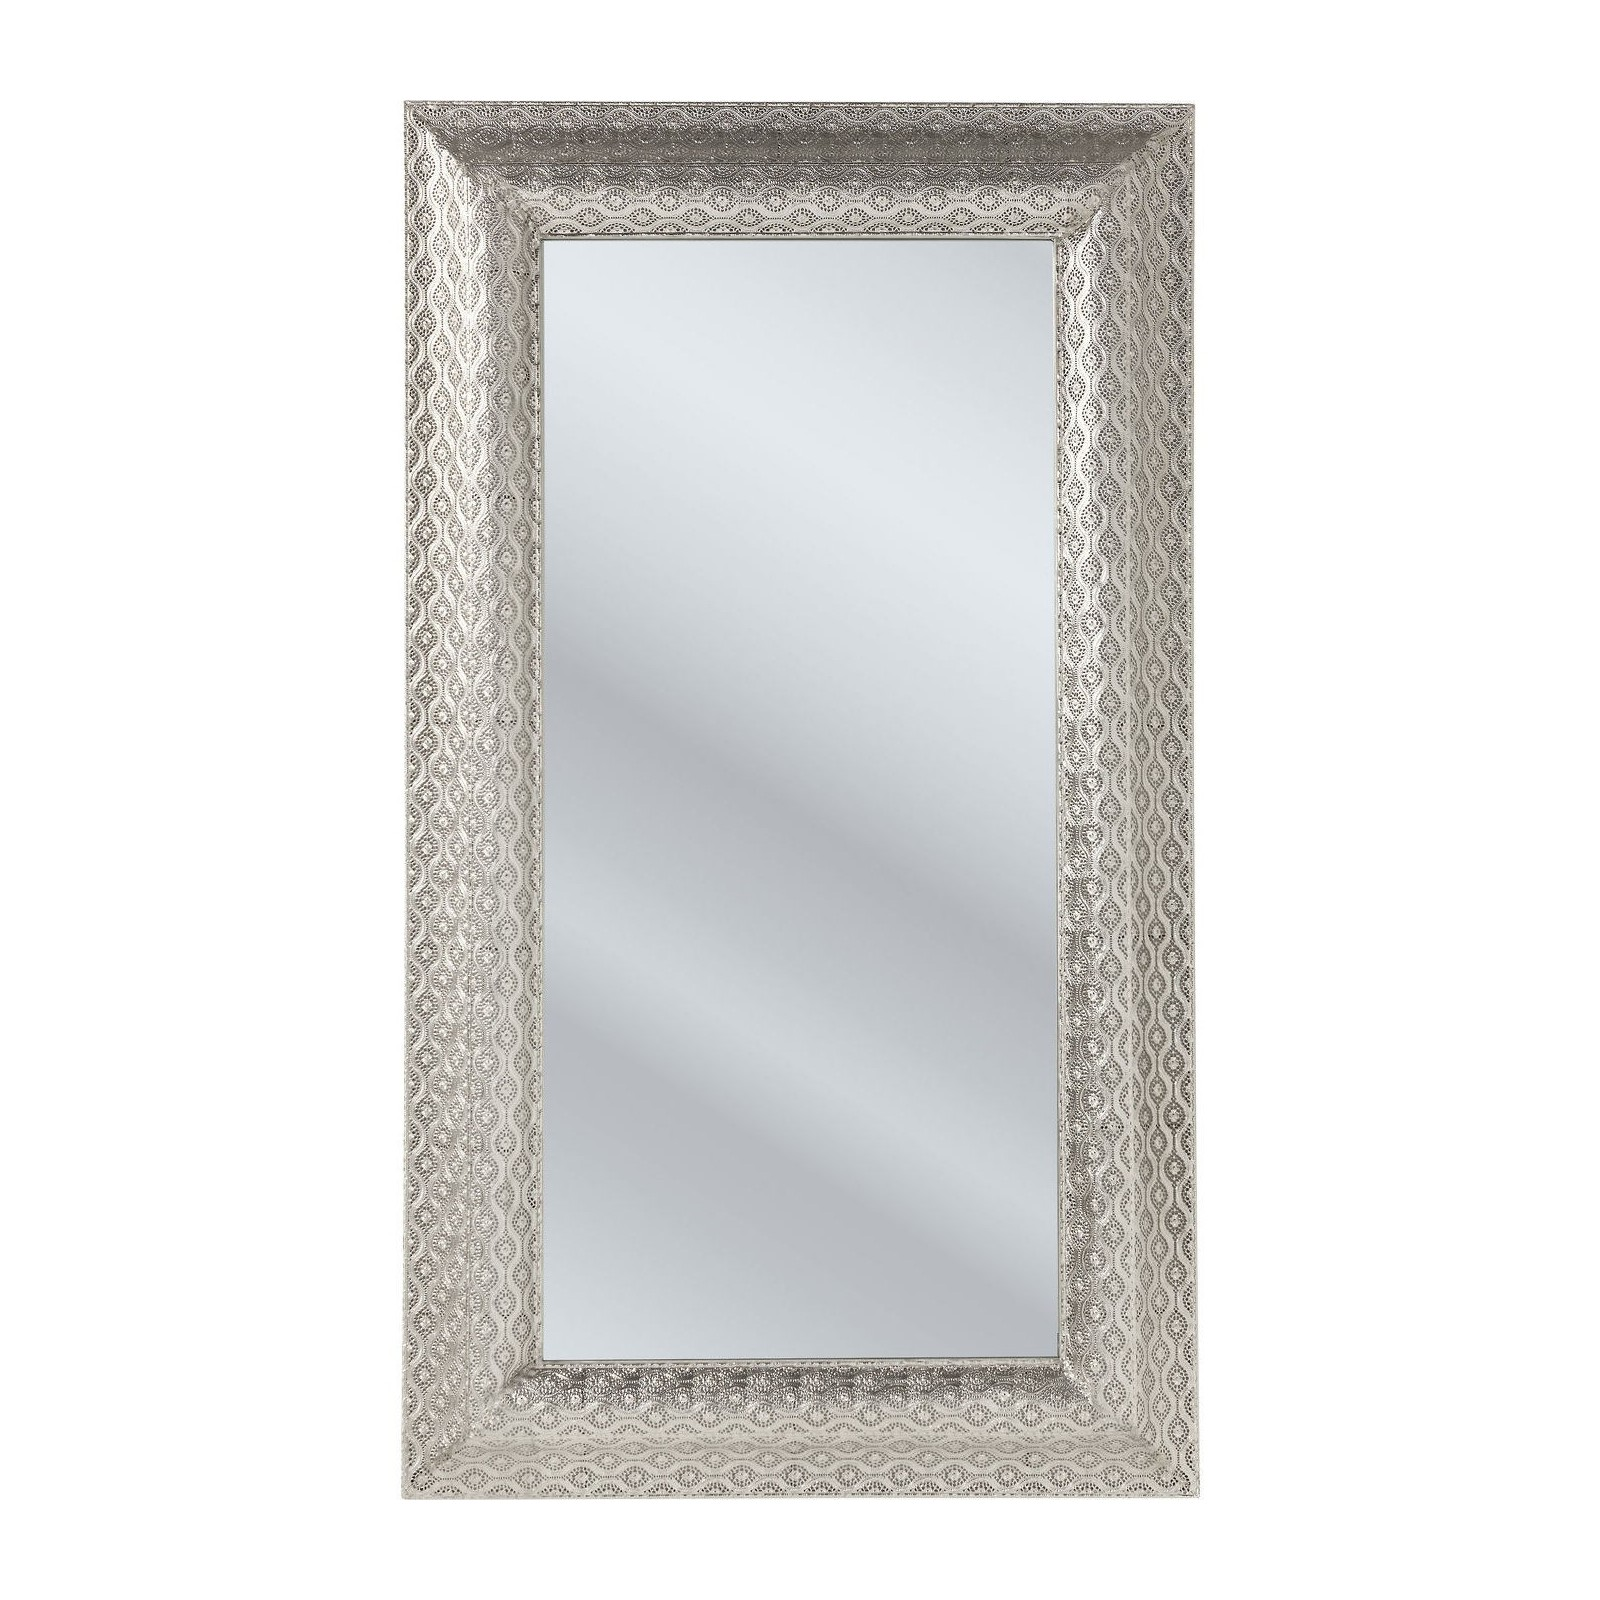 Grand 160x90 format rectangle inspiration orientale for Miroir 50 x 90